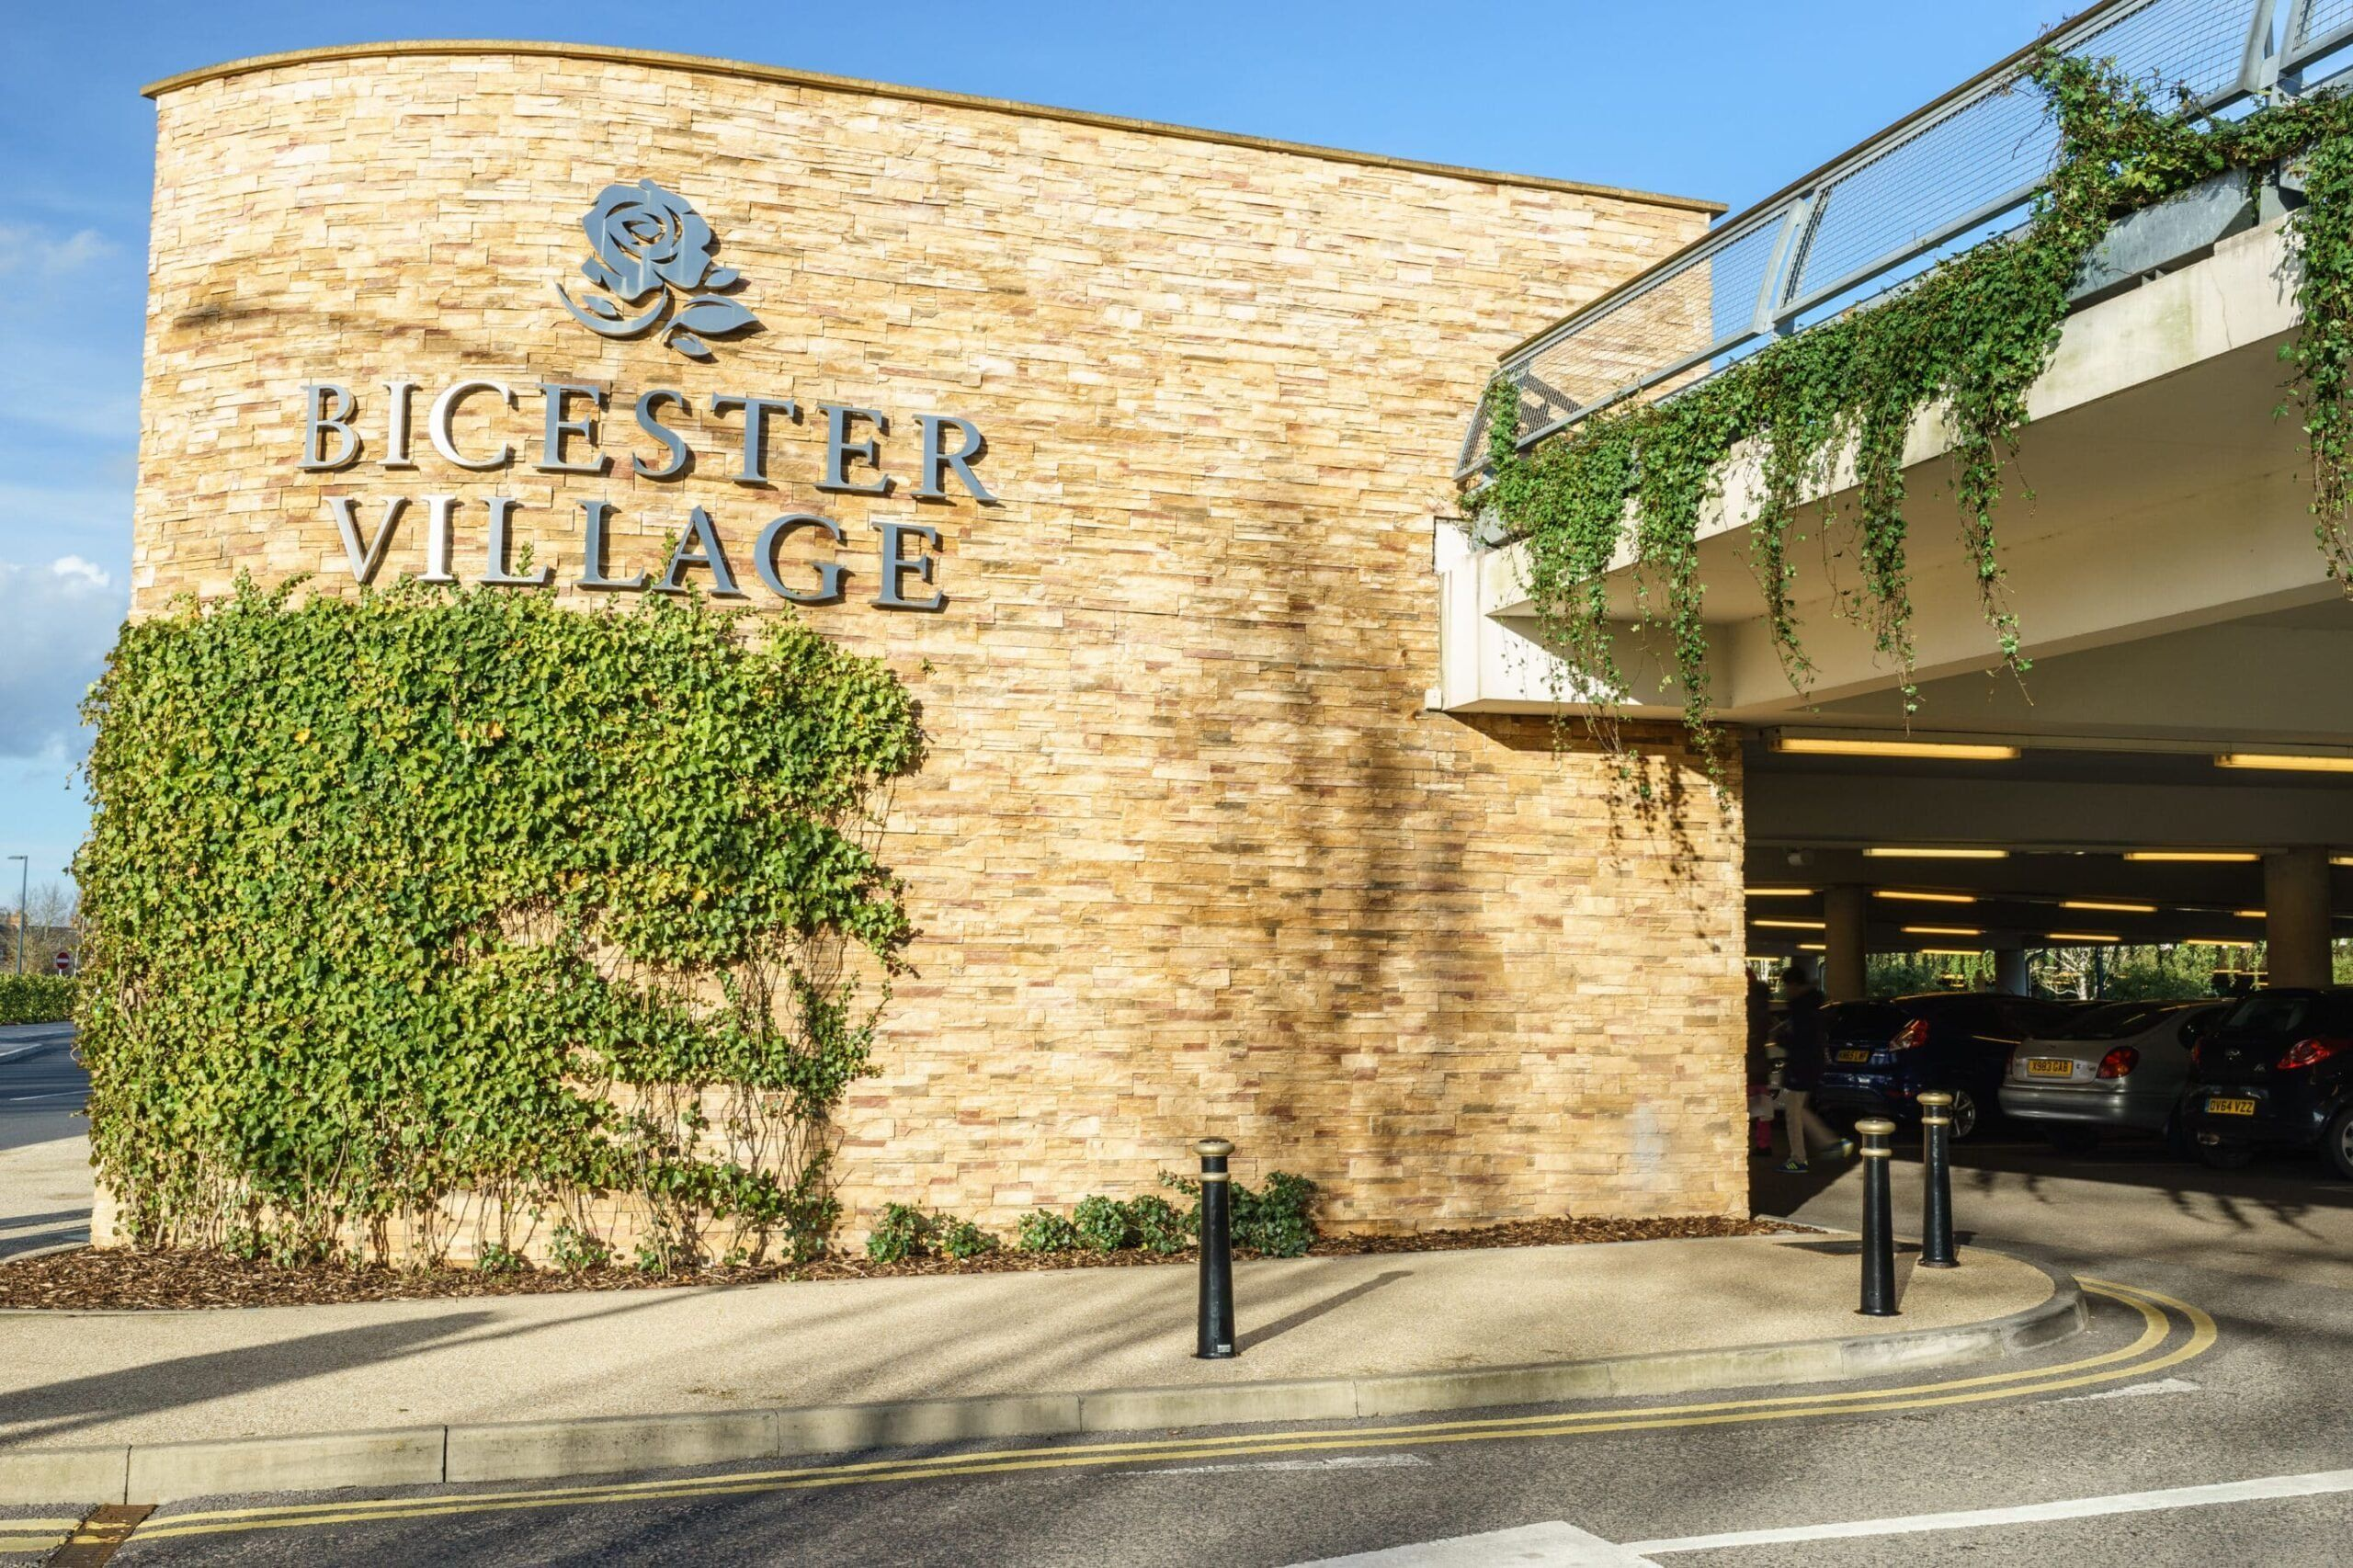 Bicester village - attraction